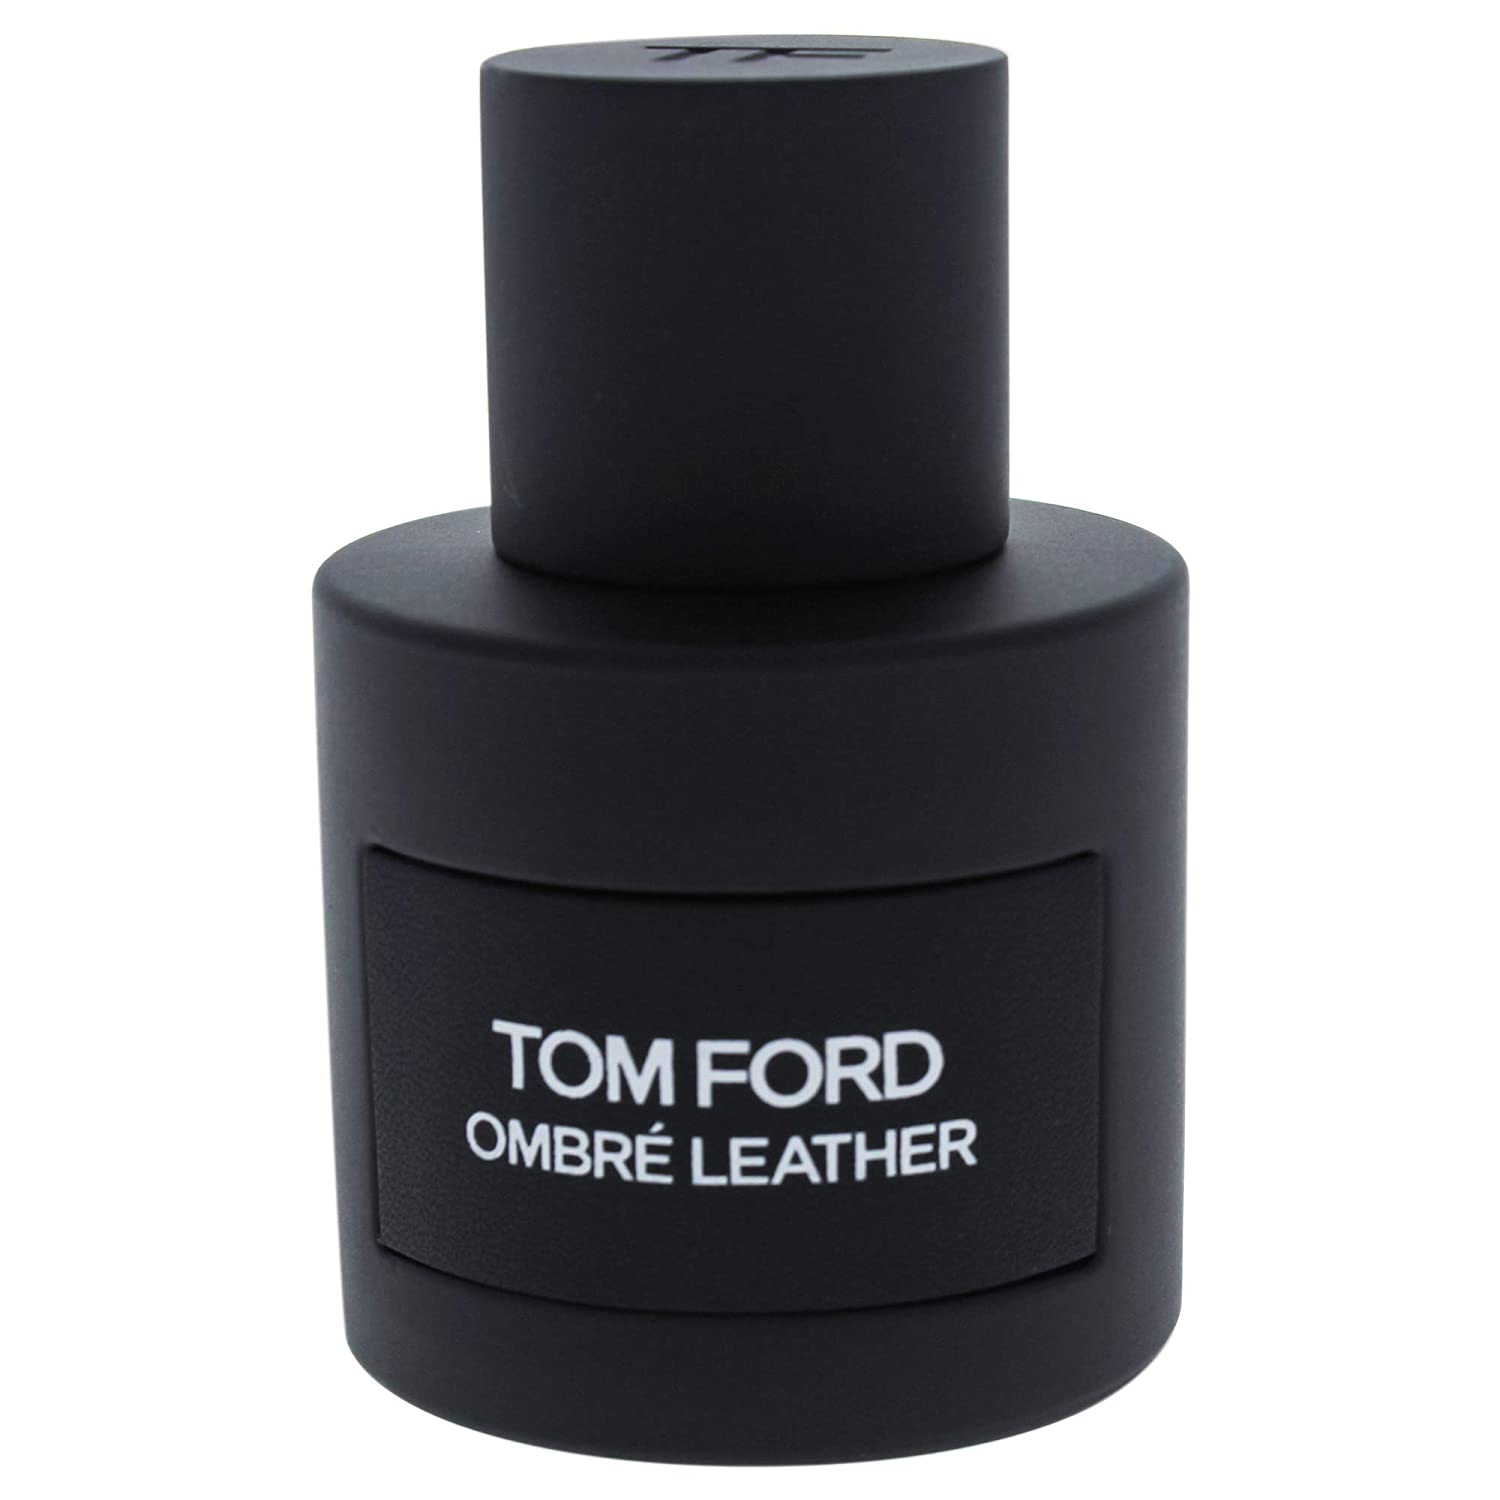 Ombre Leather Tom Ford for Women